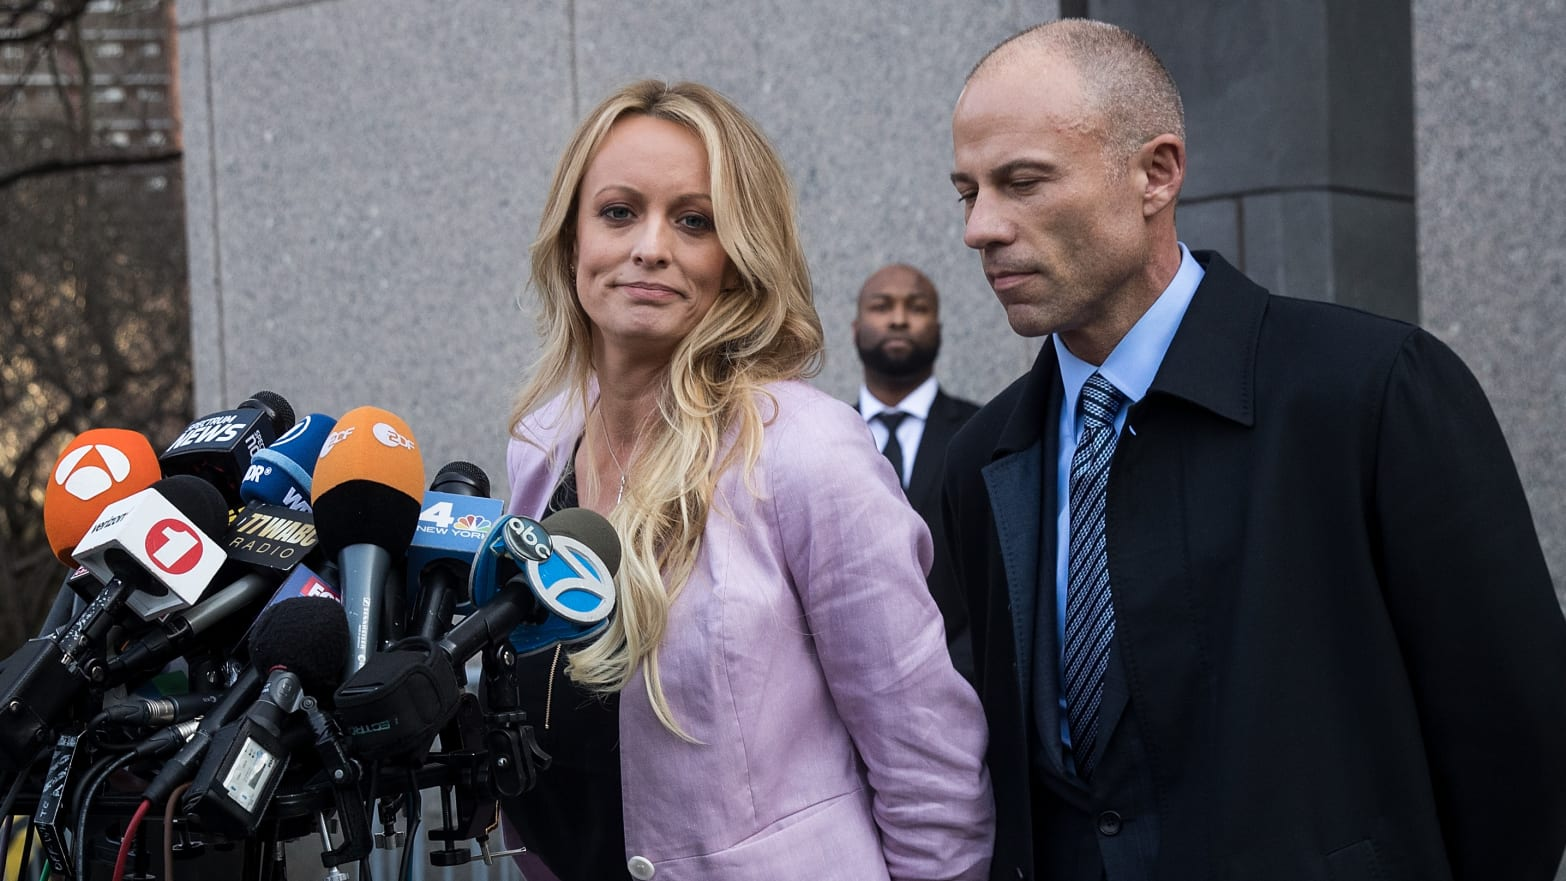 Michael Avenatti To Face Charges Over Misusing Stormy Daniels' Money: Report